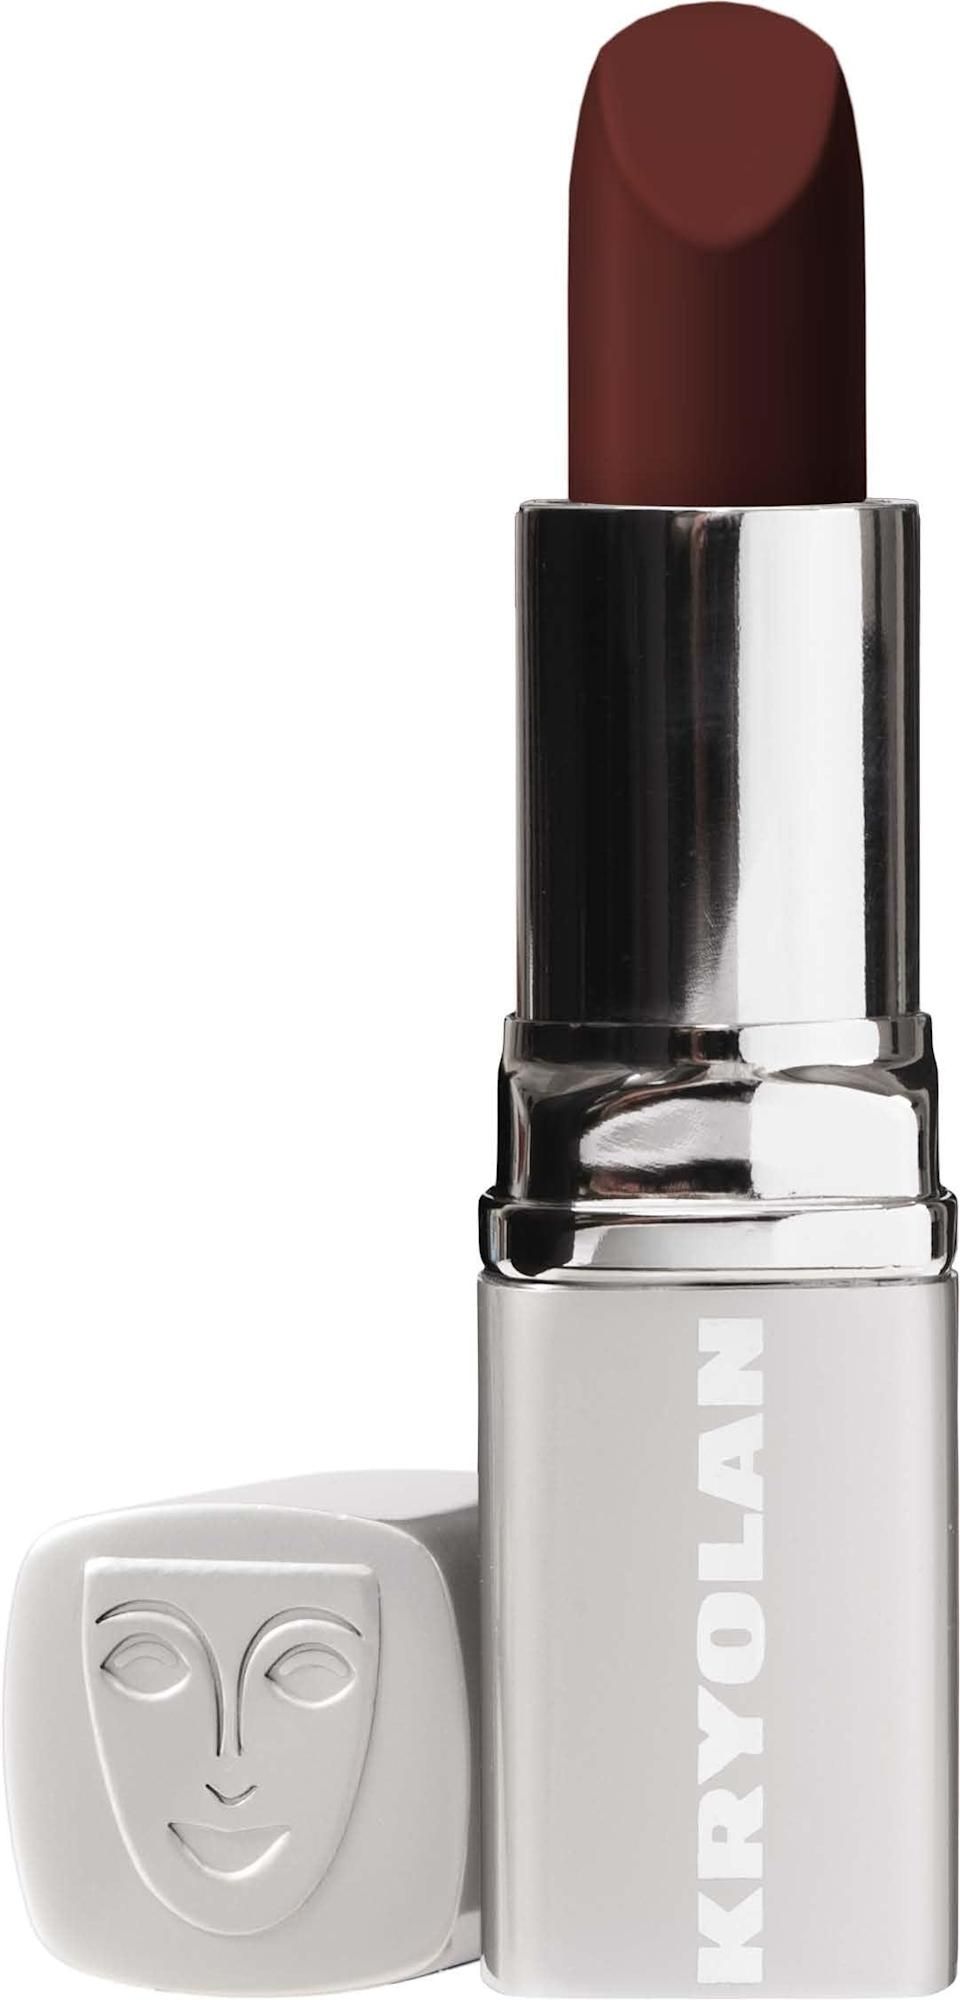 <p>You're sure to find a shade that flatters your skin tone amongst the 92 shades in <span>Kryolan's Lipstick Classic</span> ($17) line. Minimalist packaging aside, we appreciate that the formula includes antioxidant-rich Vitamin E and promises longevity.</p>